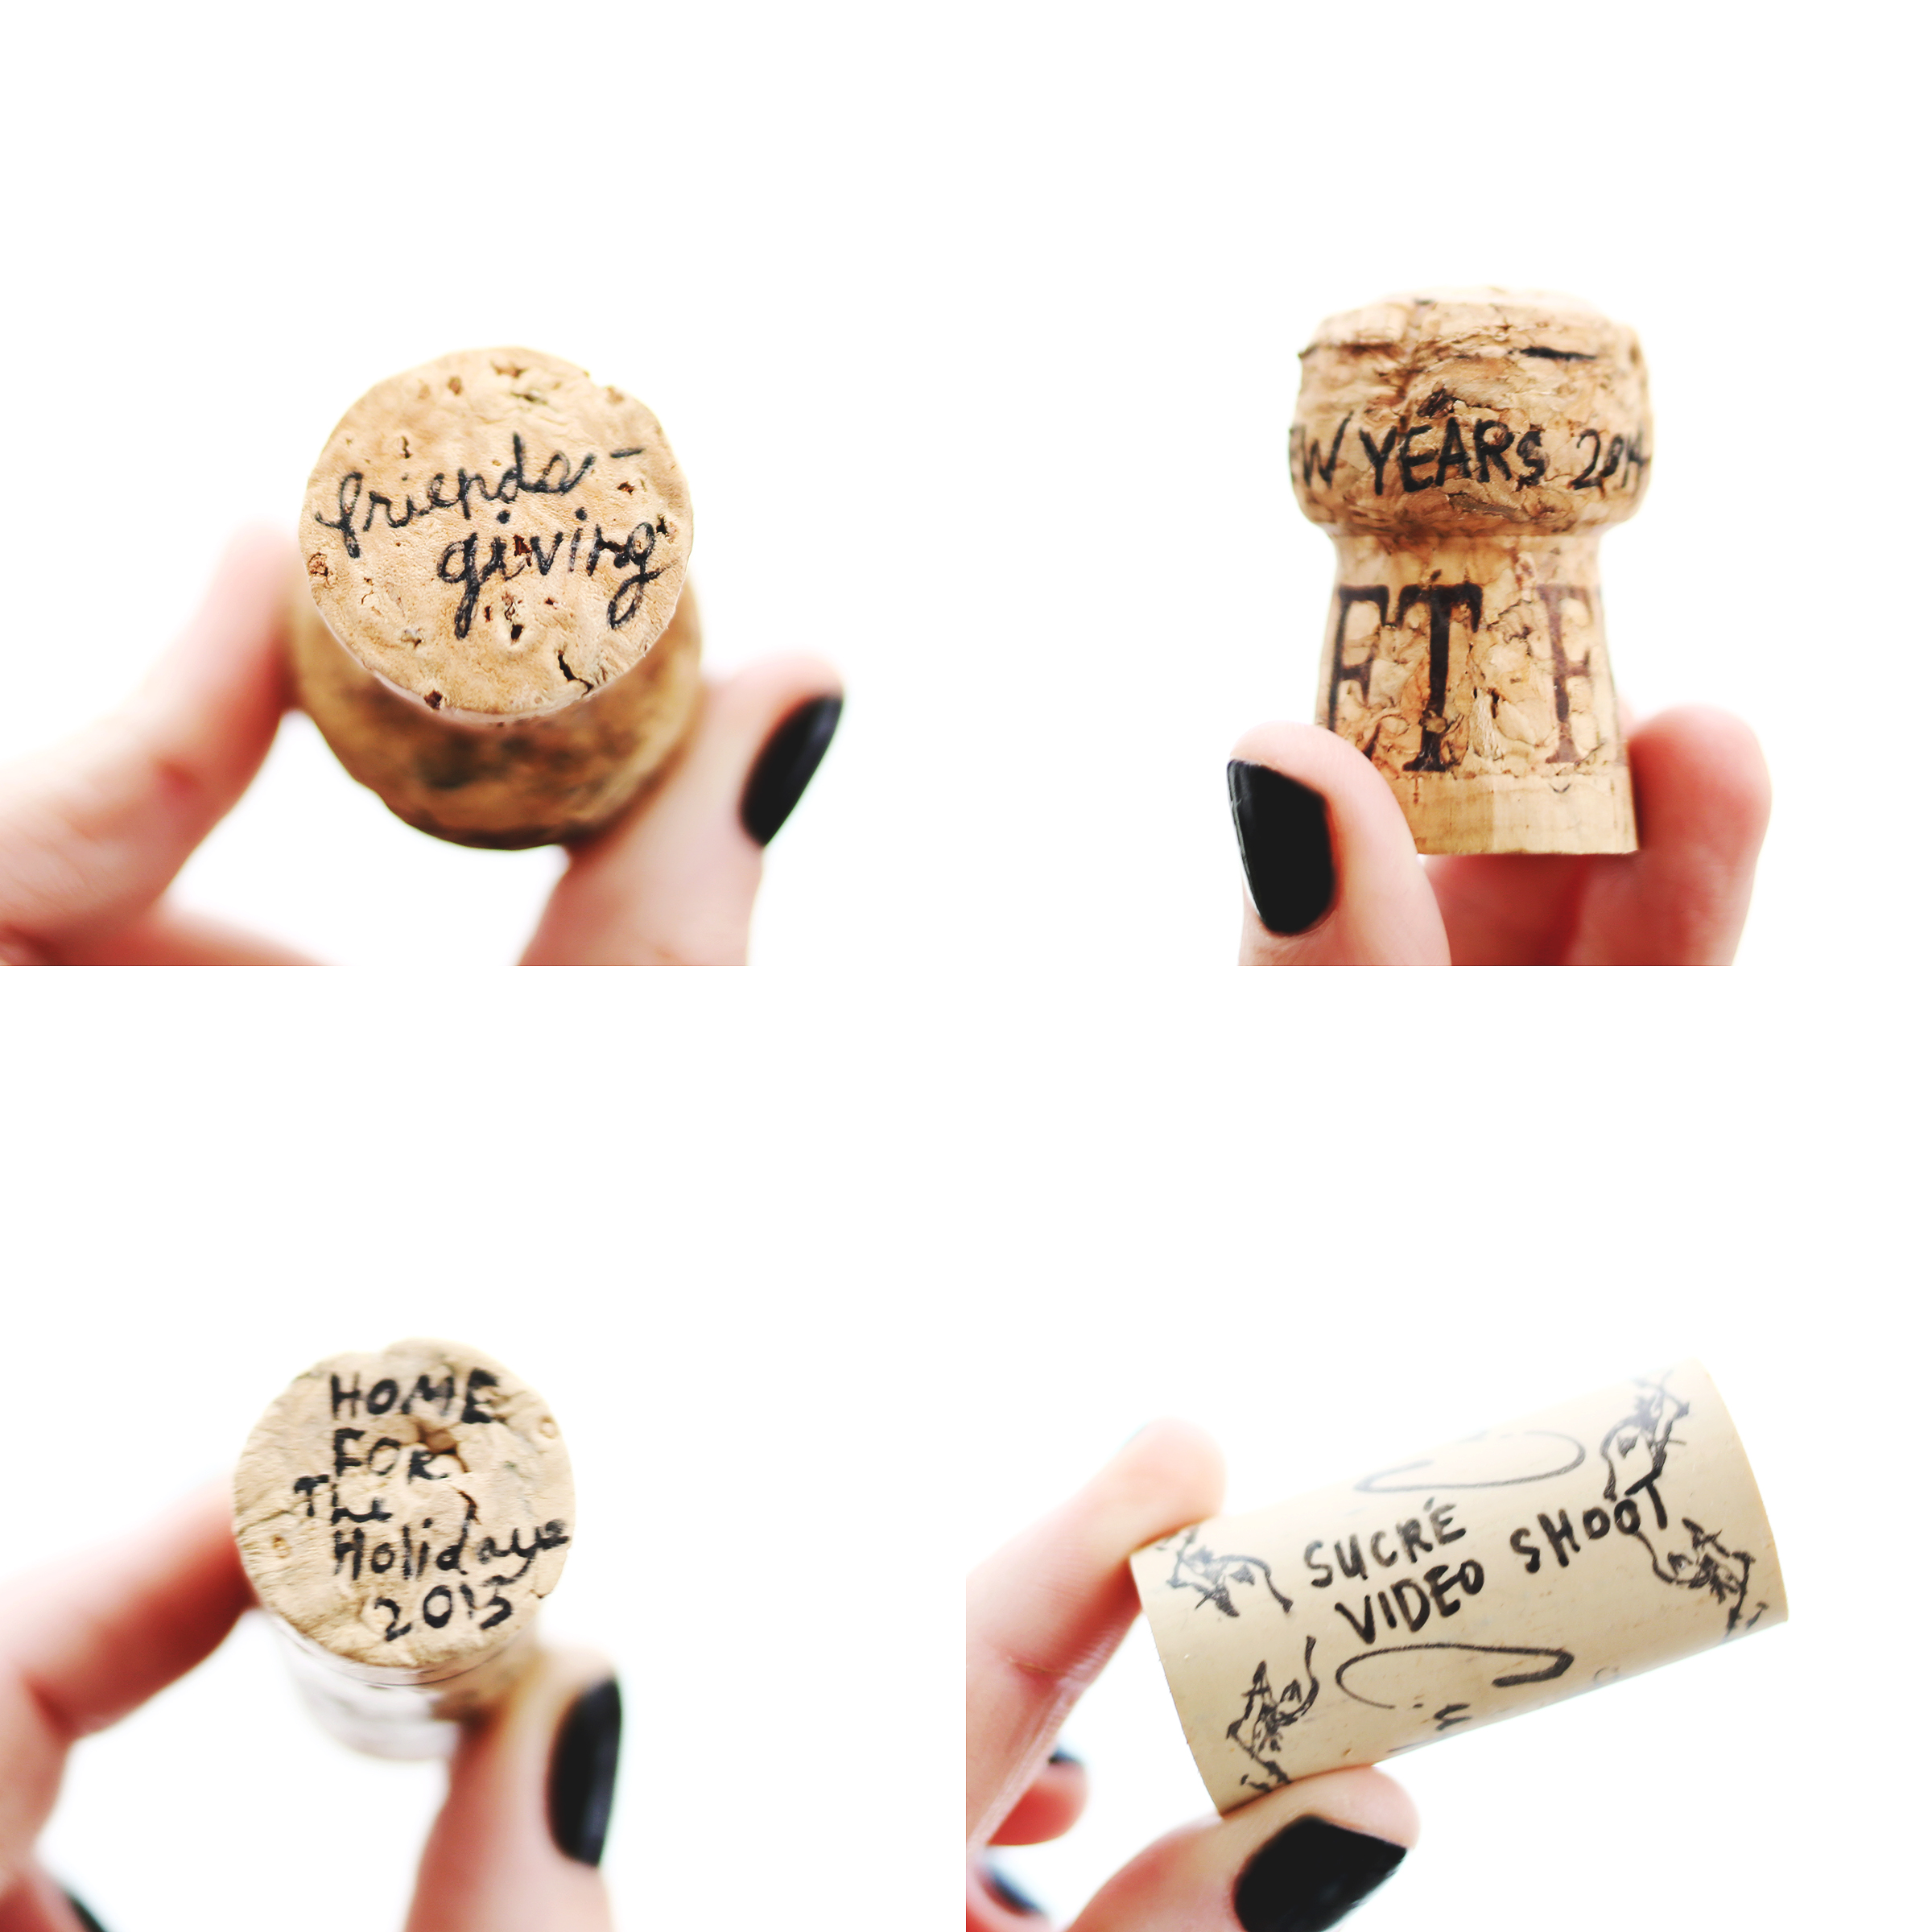 Little Traditions- saving corks from special occasions and happy times!